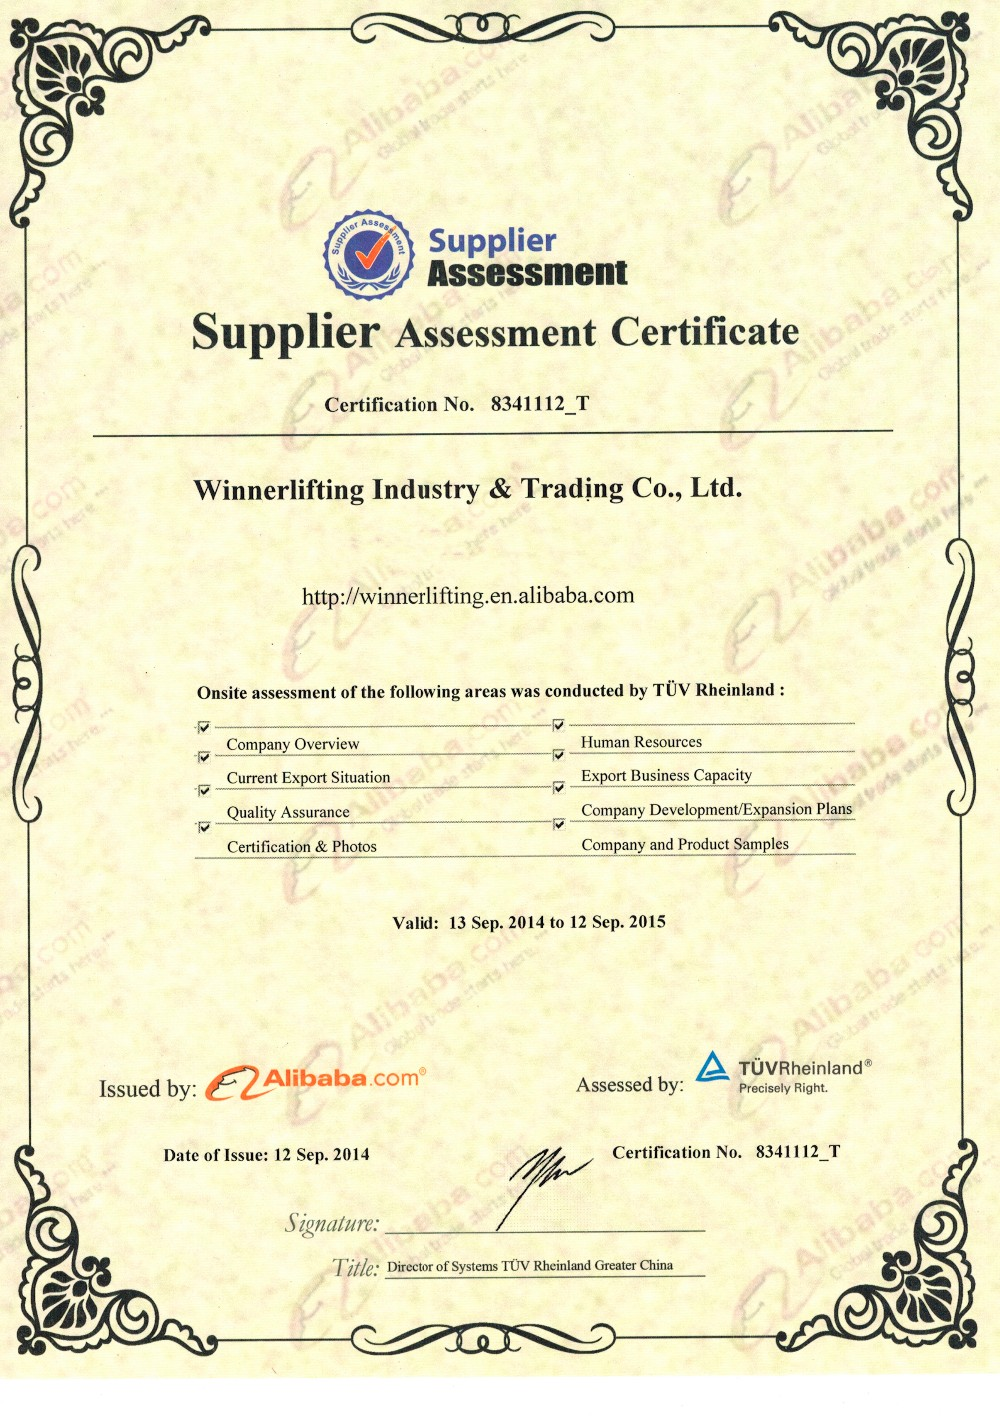 Assessment Certificate from Alibaba.jpg